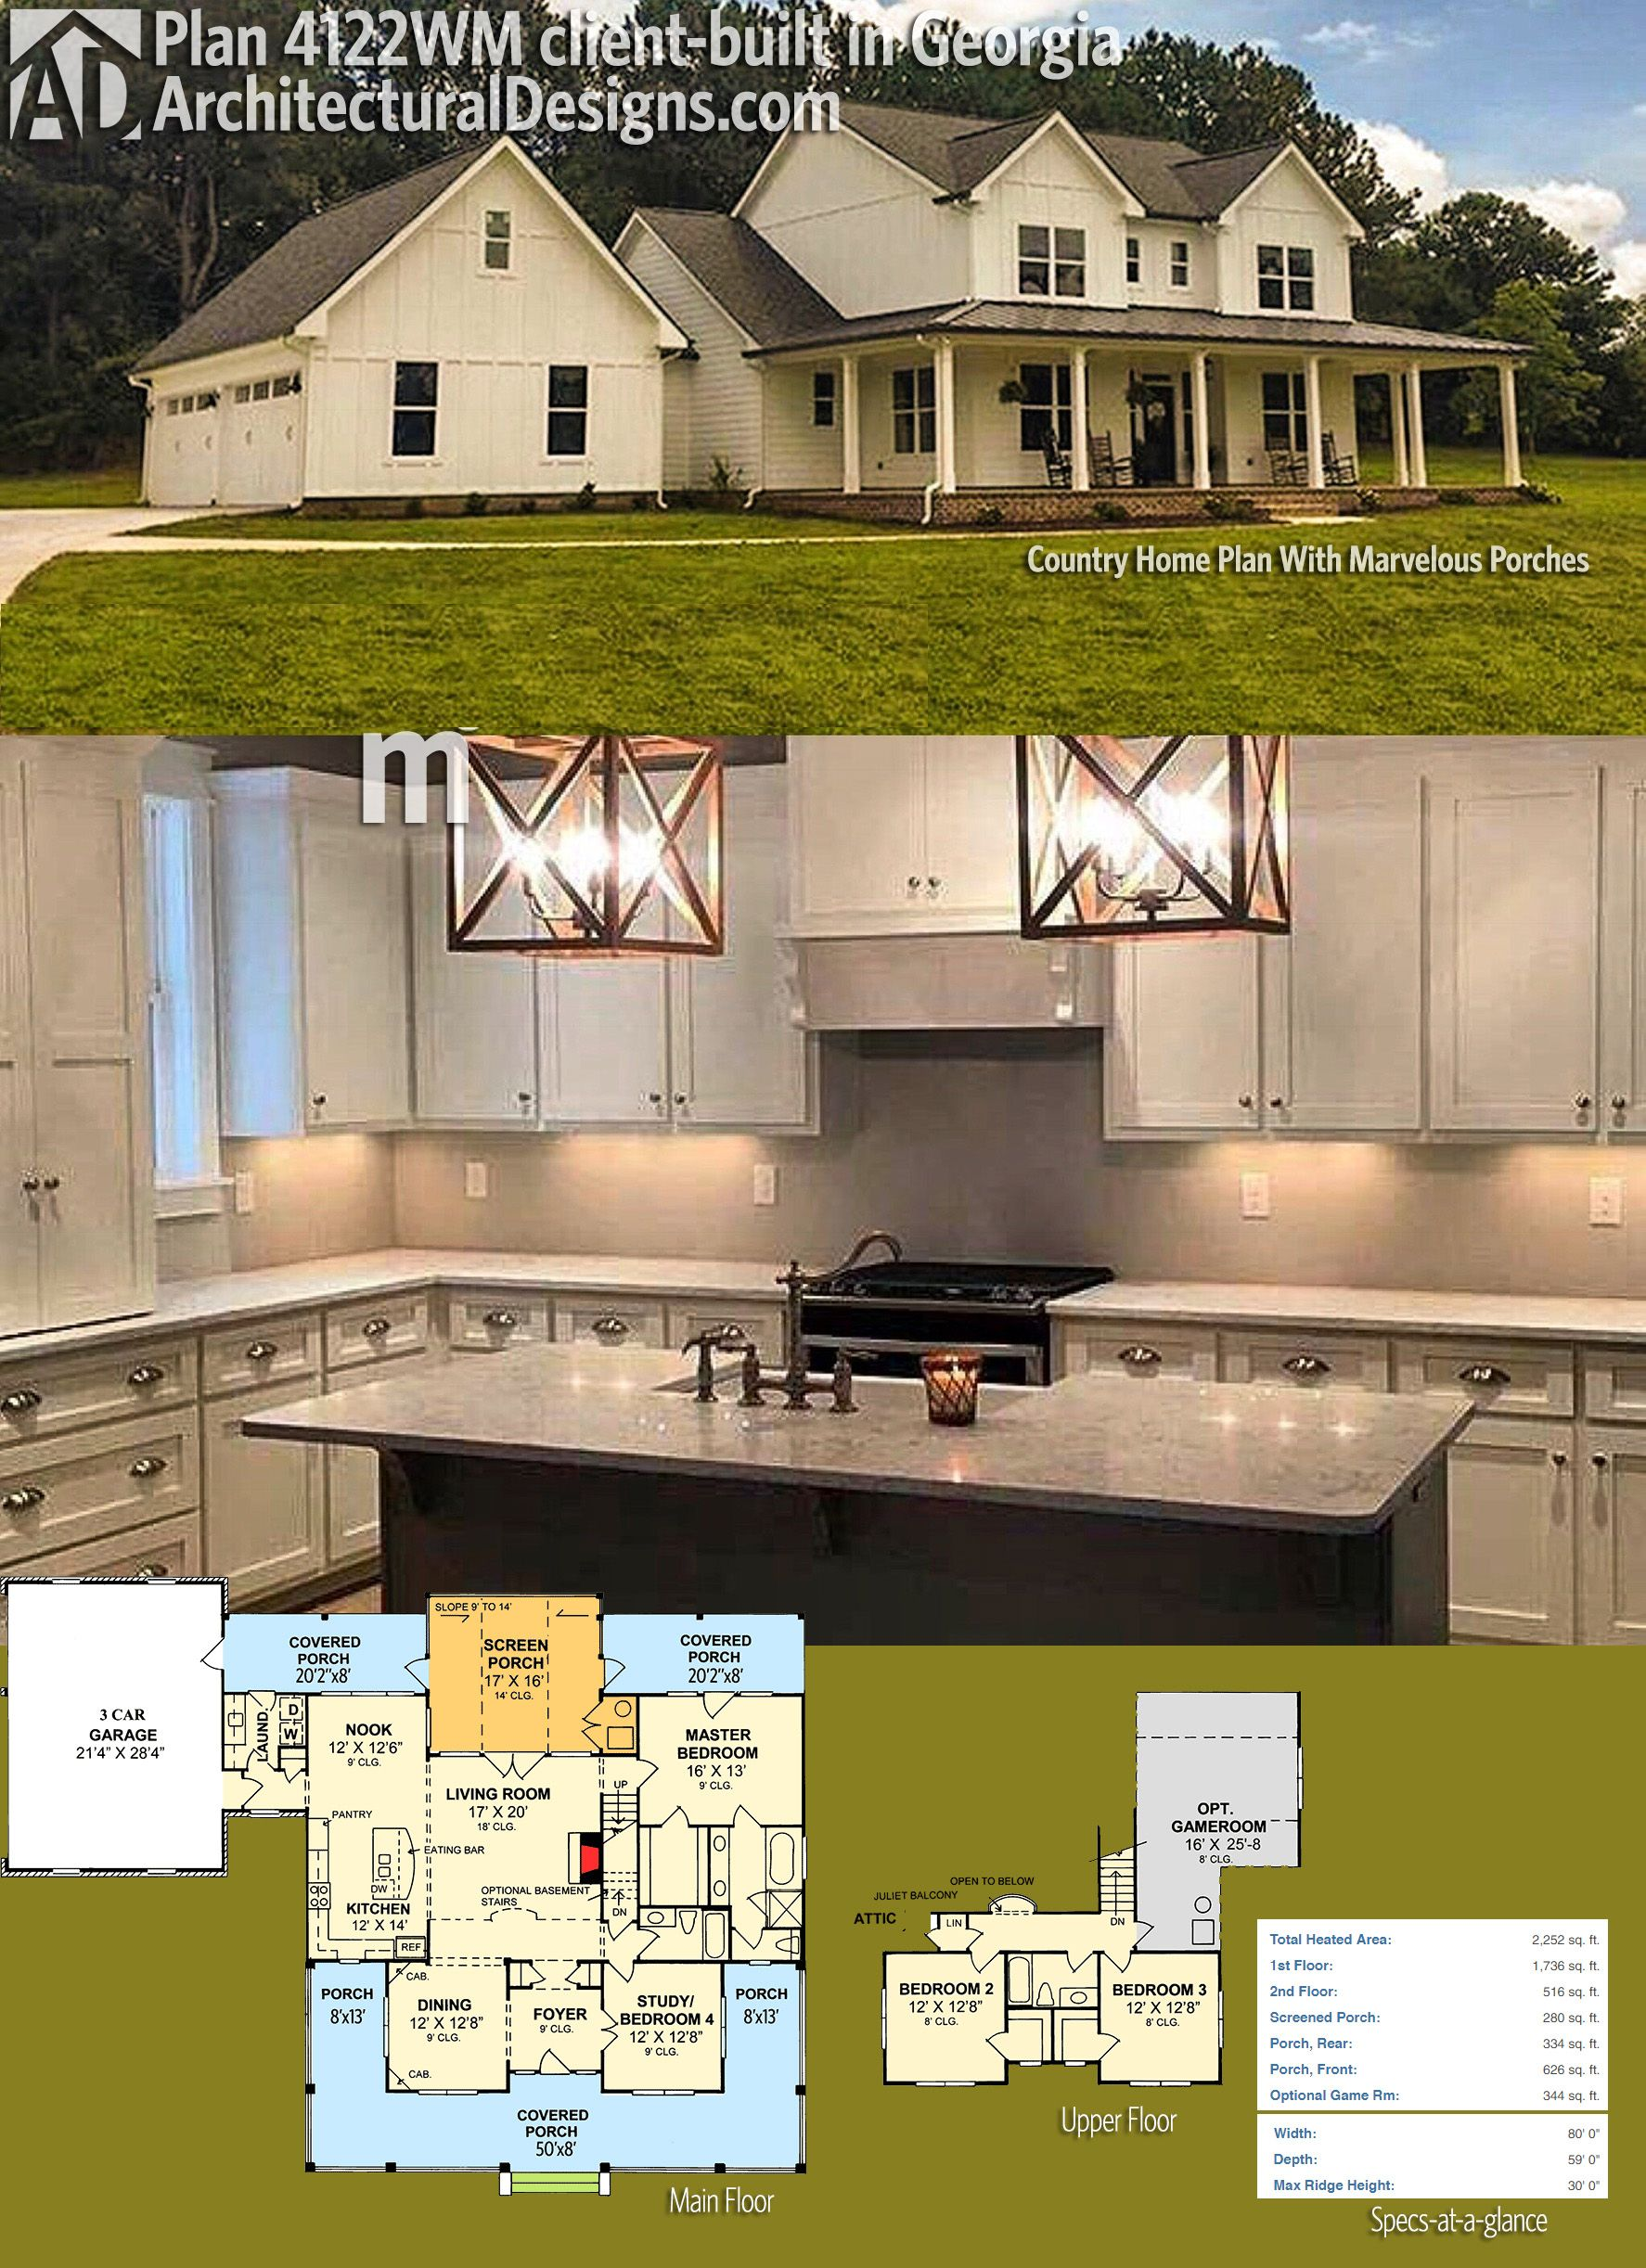 Architectural Designs Country Farmhouse Plan 4122WM client built